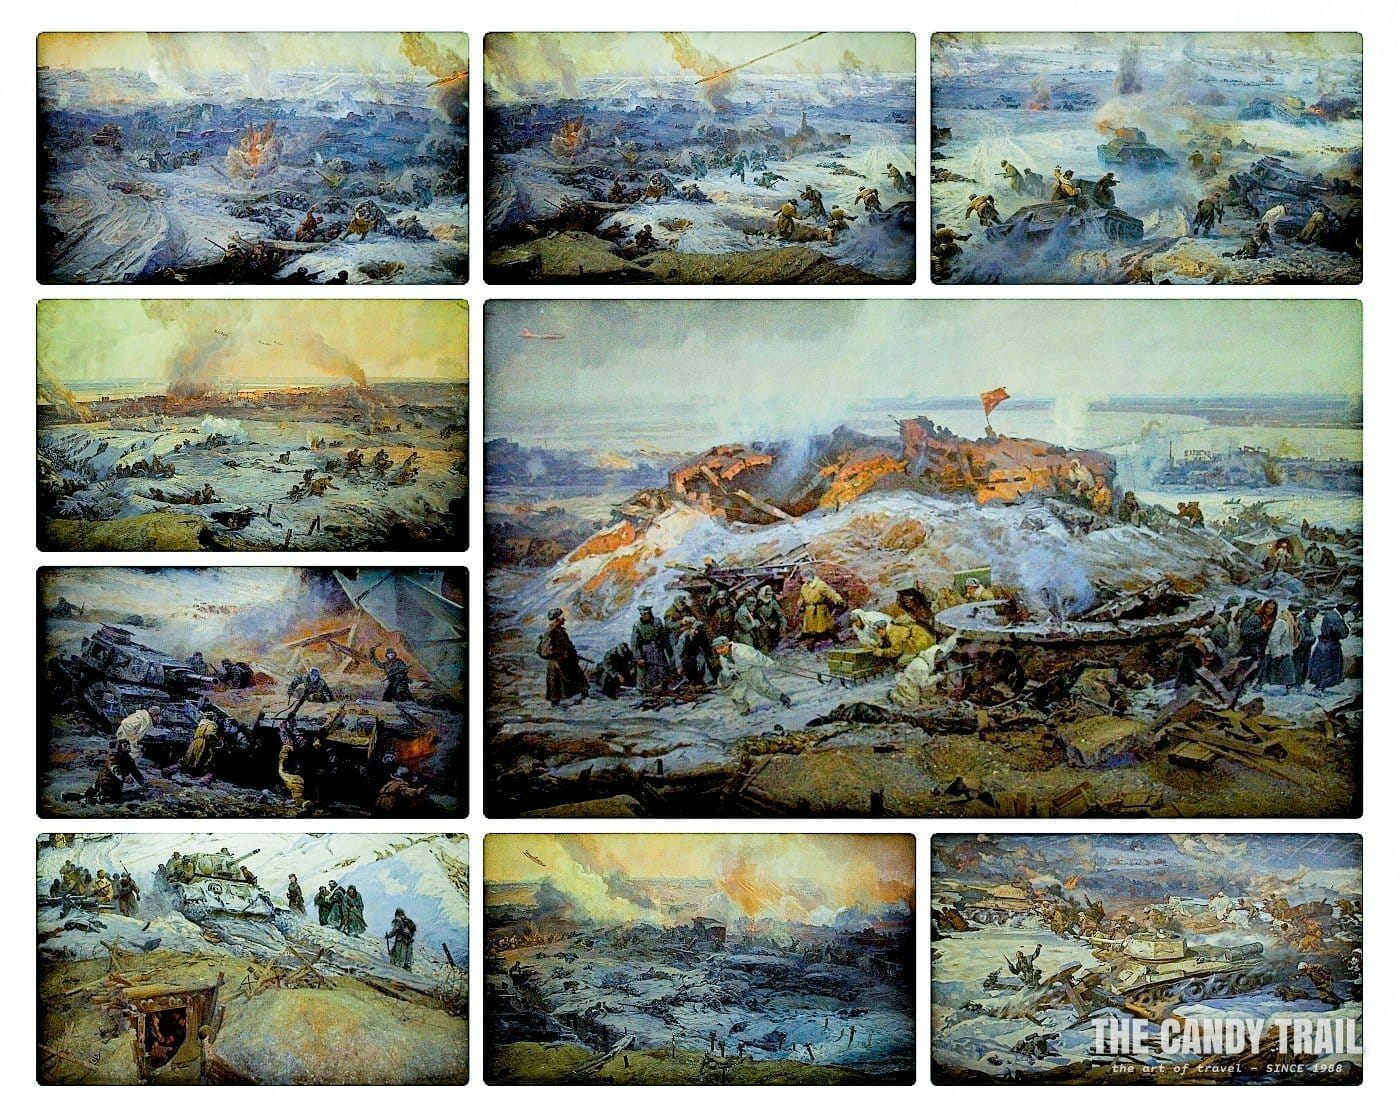 Stalingrad Museum: Intense battle scenes painted in a 360-degree panorama of Stalingrad as seen from Hill 101.